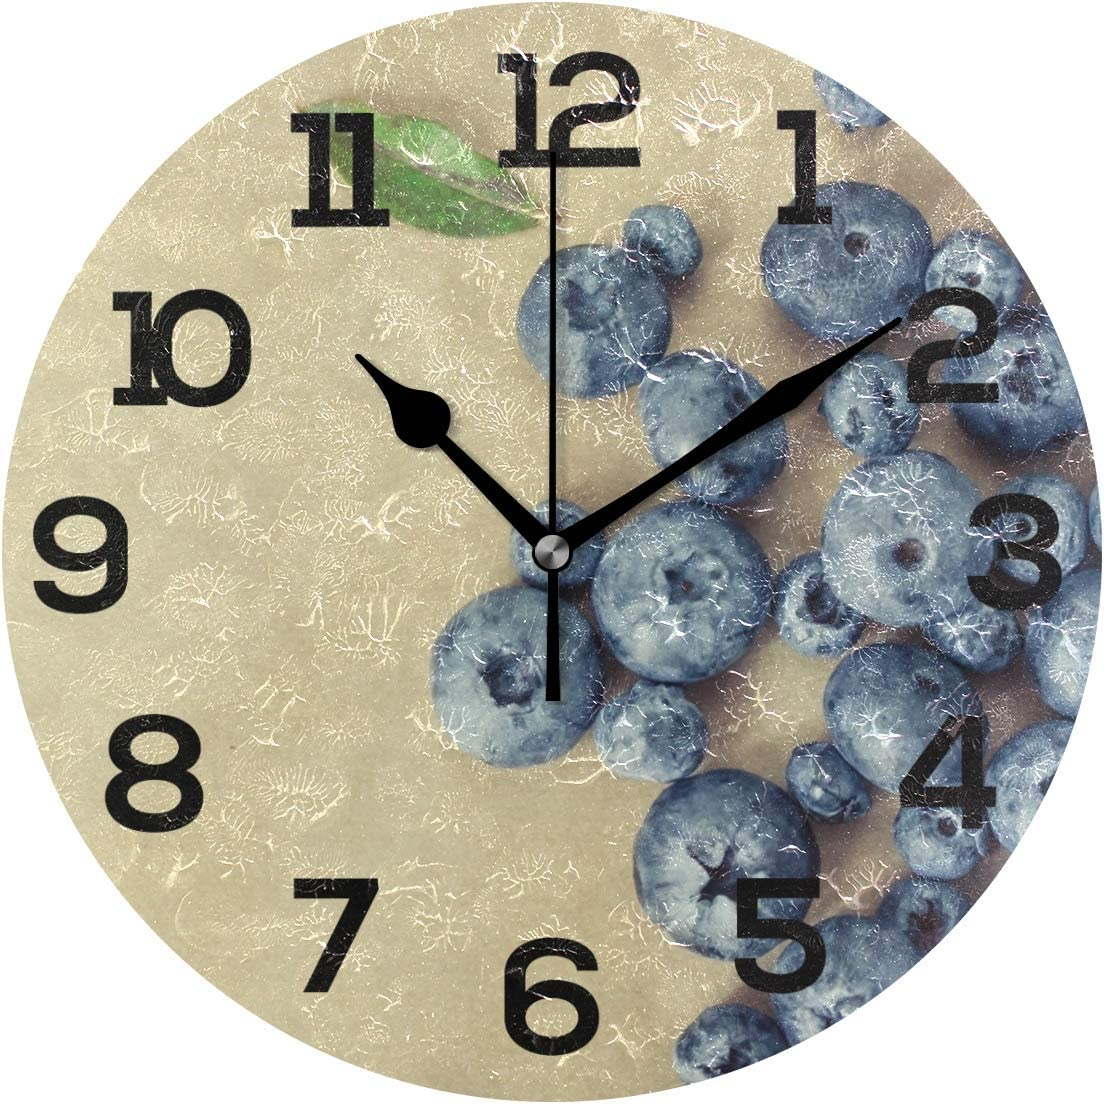 IMONKA Blueberry Round Wall Clock Non Ticking Silent Acrylic Clocks for Home Decor Living Room Bedroom Kitchen School Office